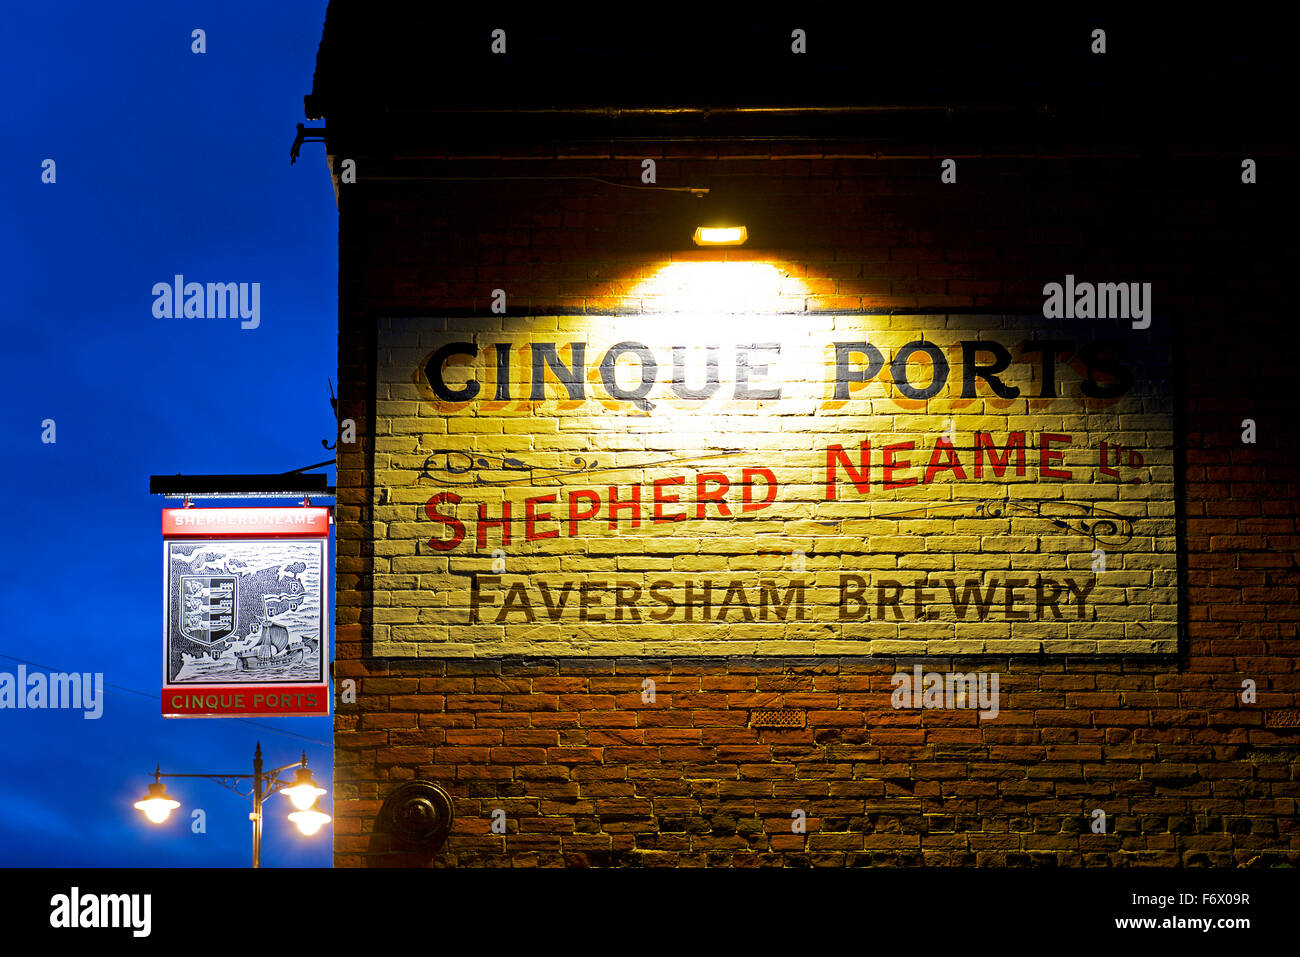 Pub sign in the town of Rye, Kent, England UK - Stock Image